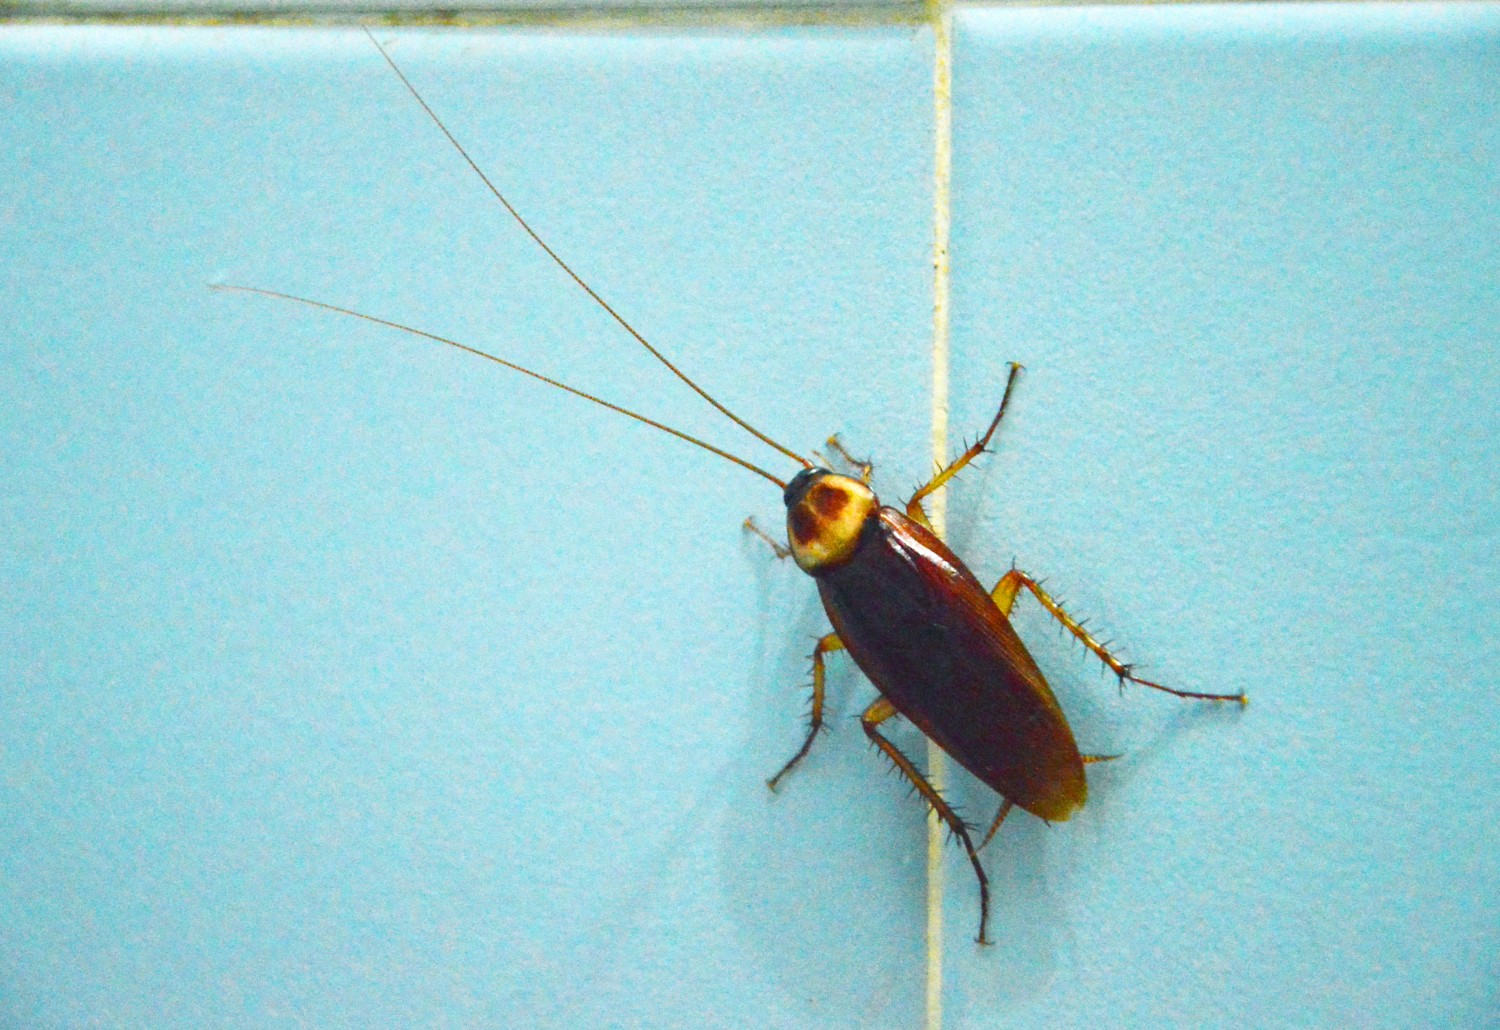 Bugs commonly found in bathrooms